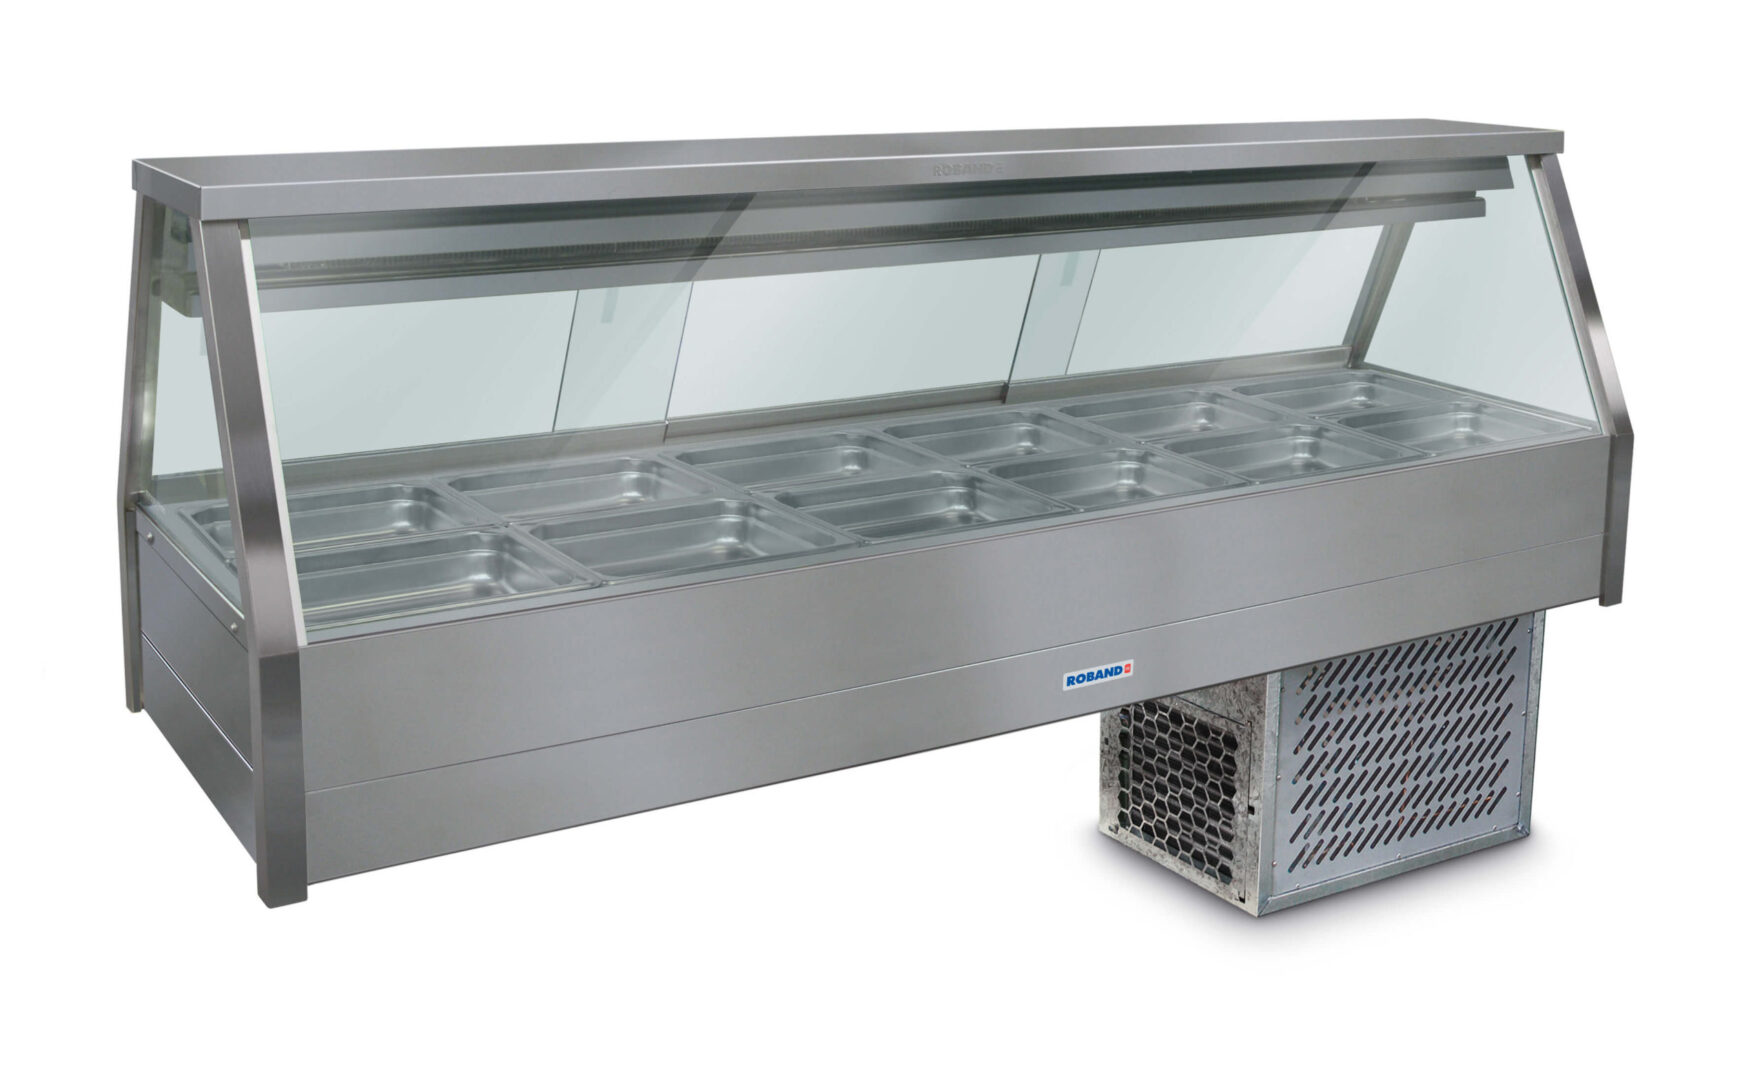 Roband Straight Glass Refrigerated Display Bar – Piped and Foamed only (no motor), 12 pans